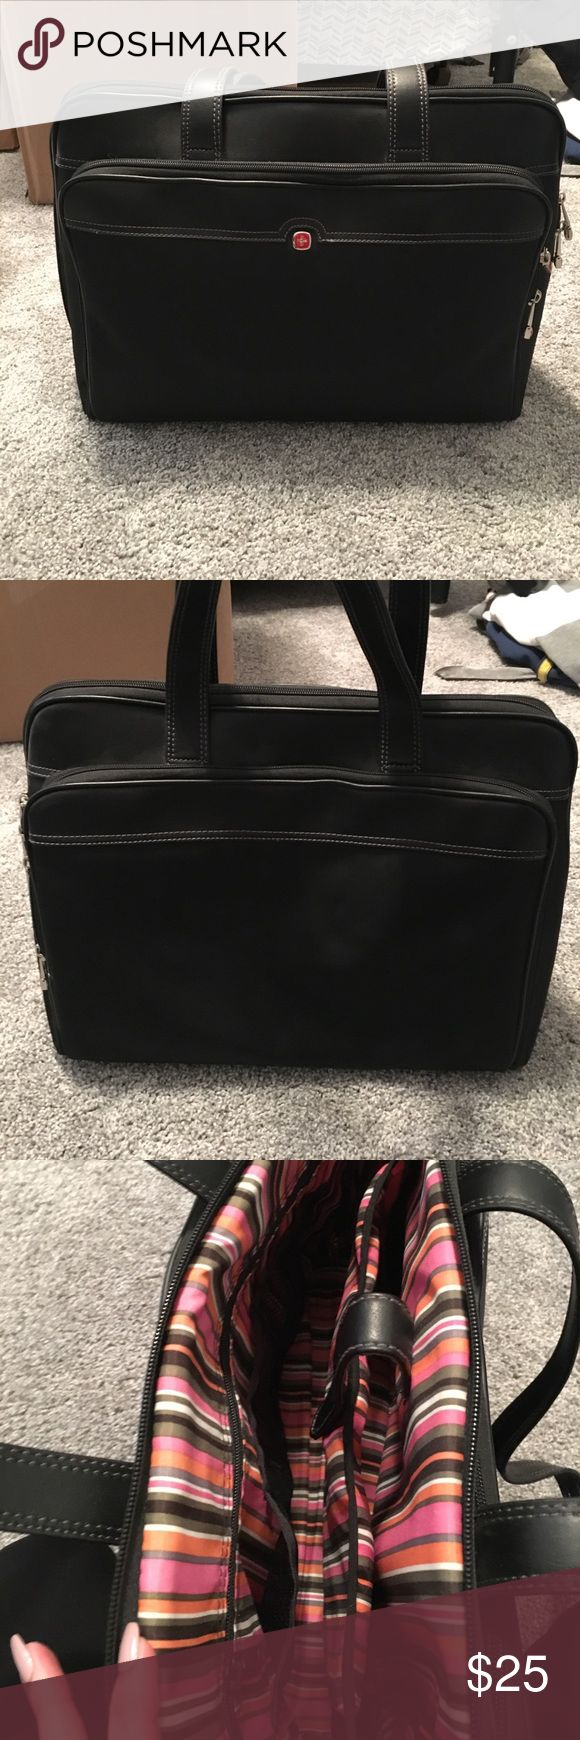 Swiss Army Laptop Bag Sturdy AND stylish laptop bag with two side pockets and lots of room. Bags Laptop Bags